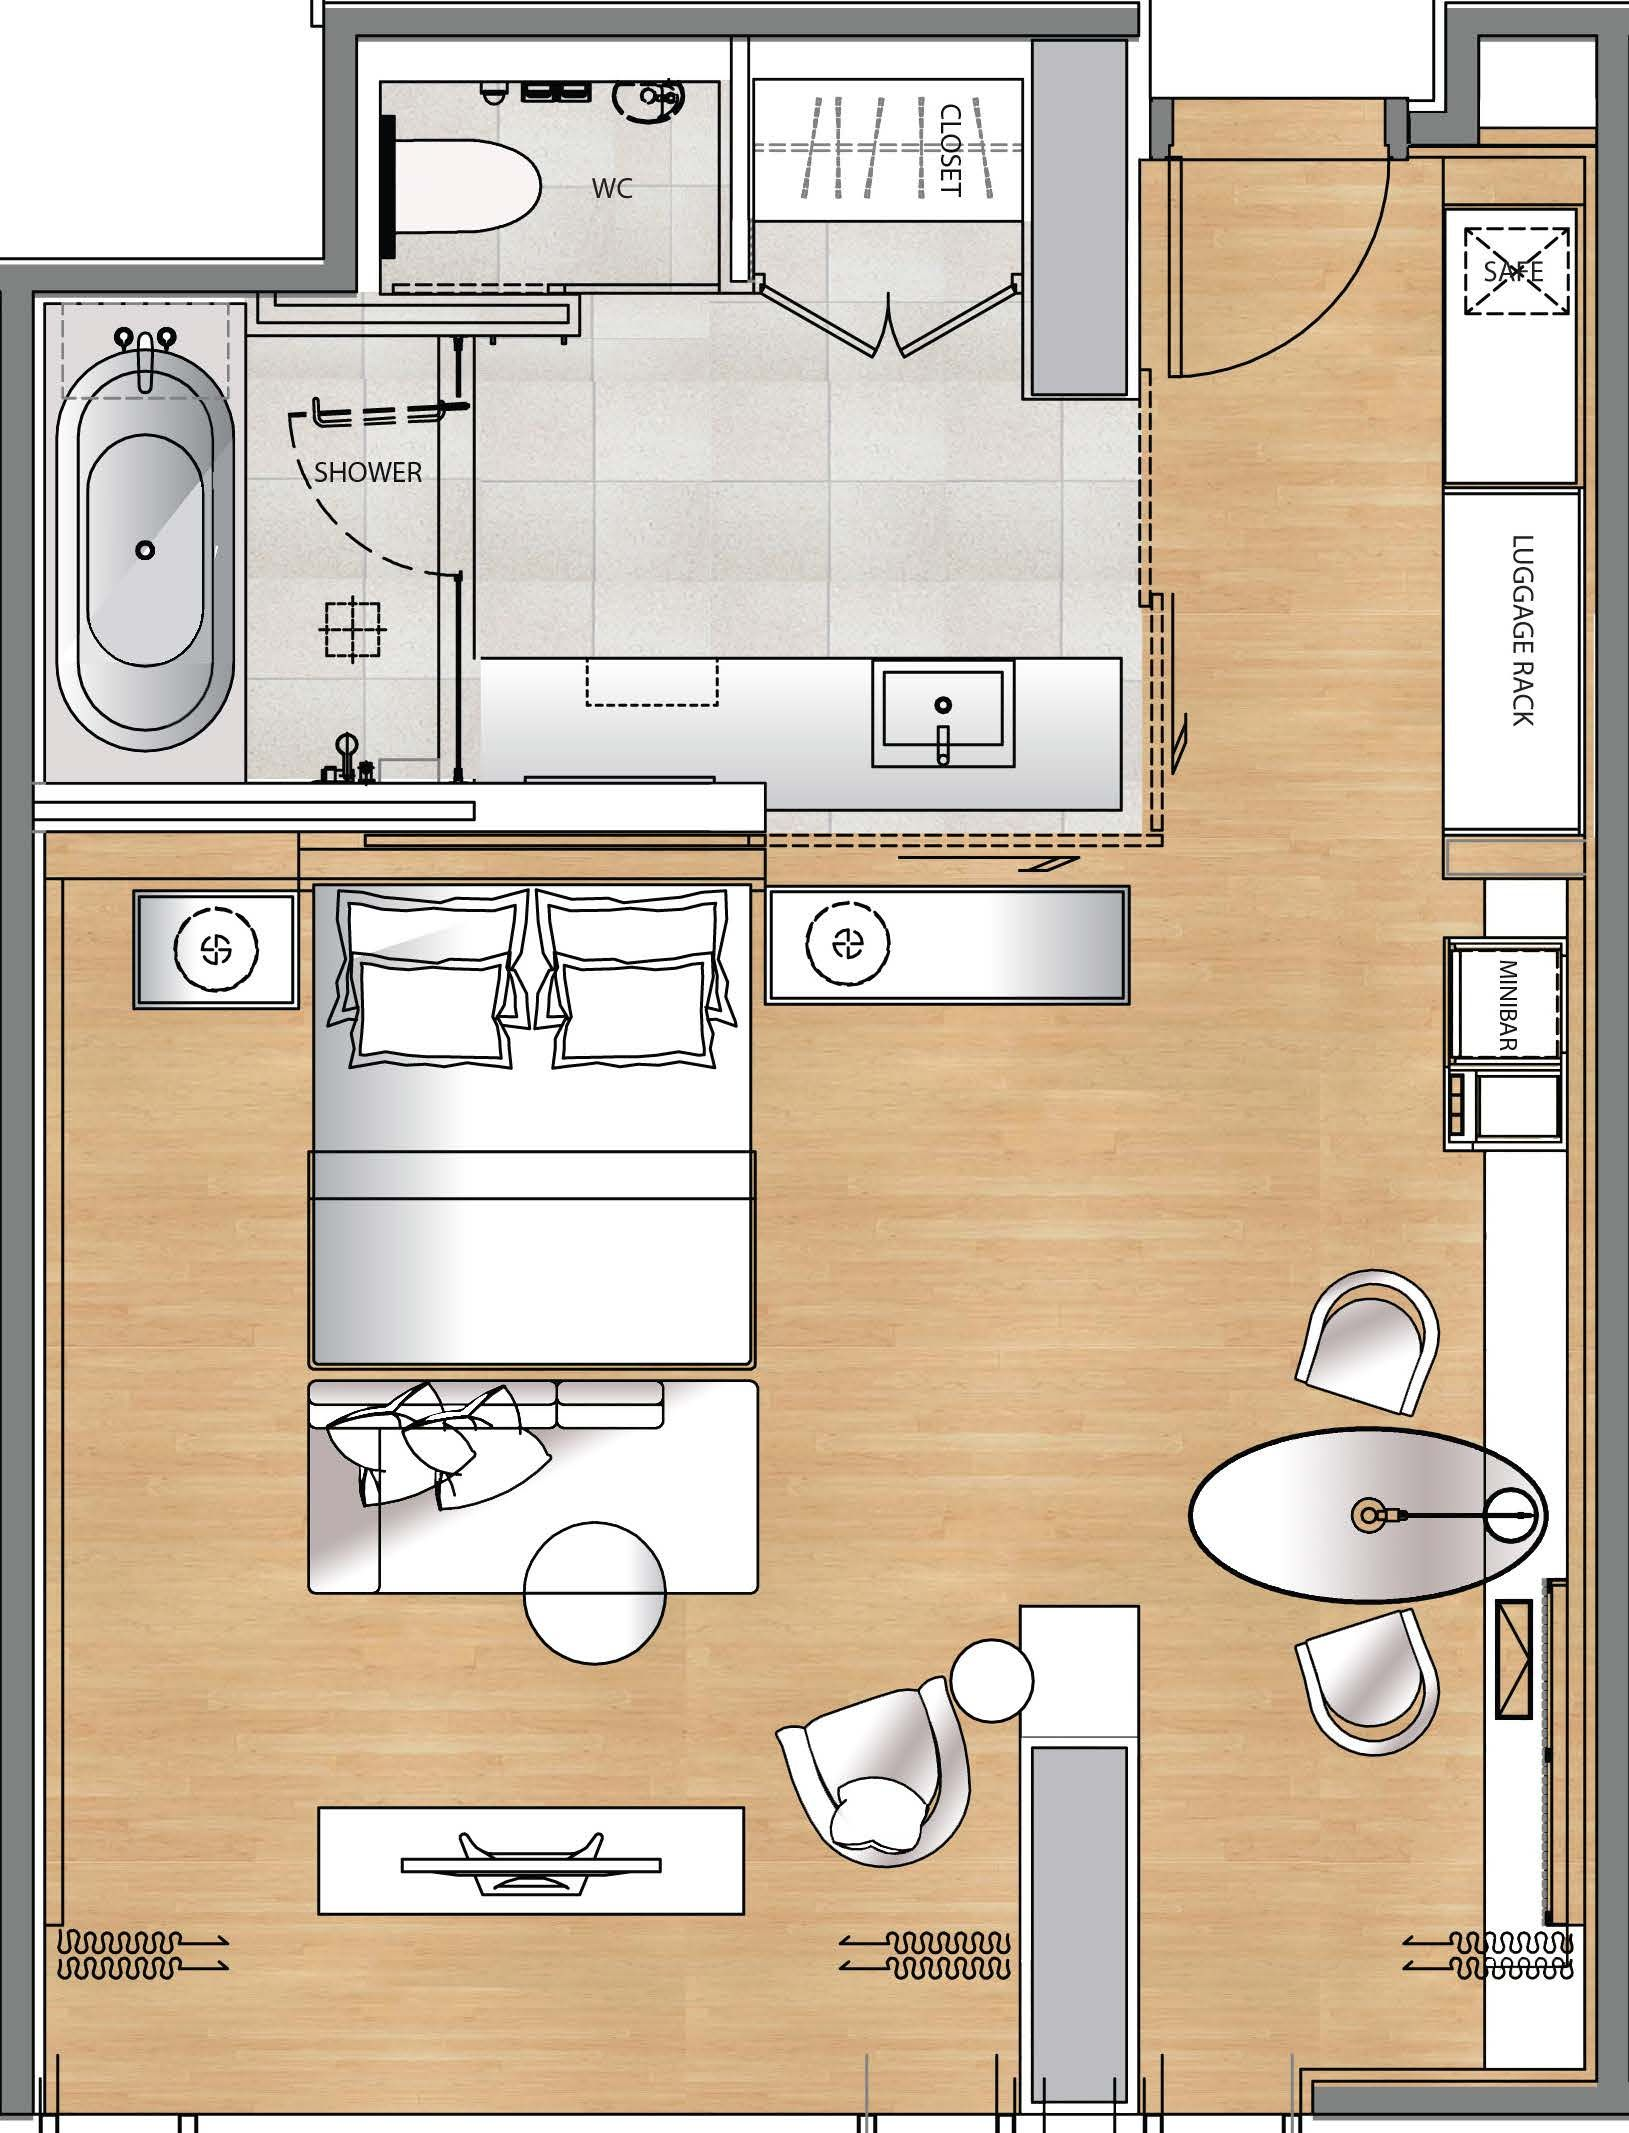 Hotel gym floor plan google search hotel rooms for Room planner